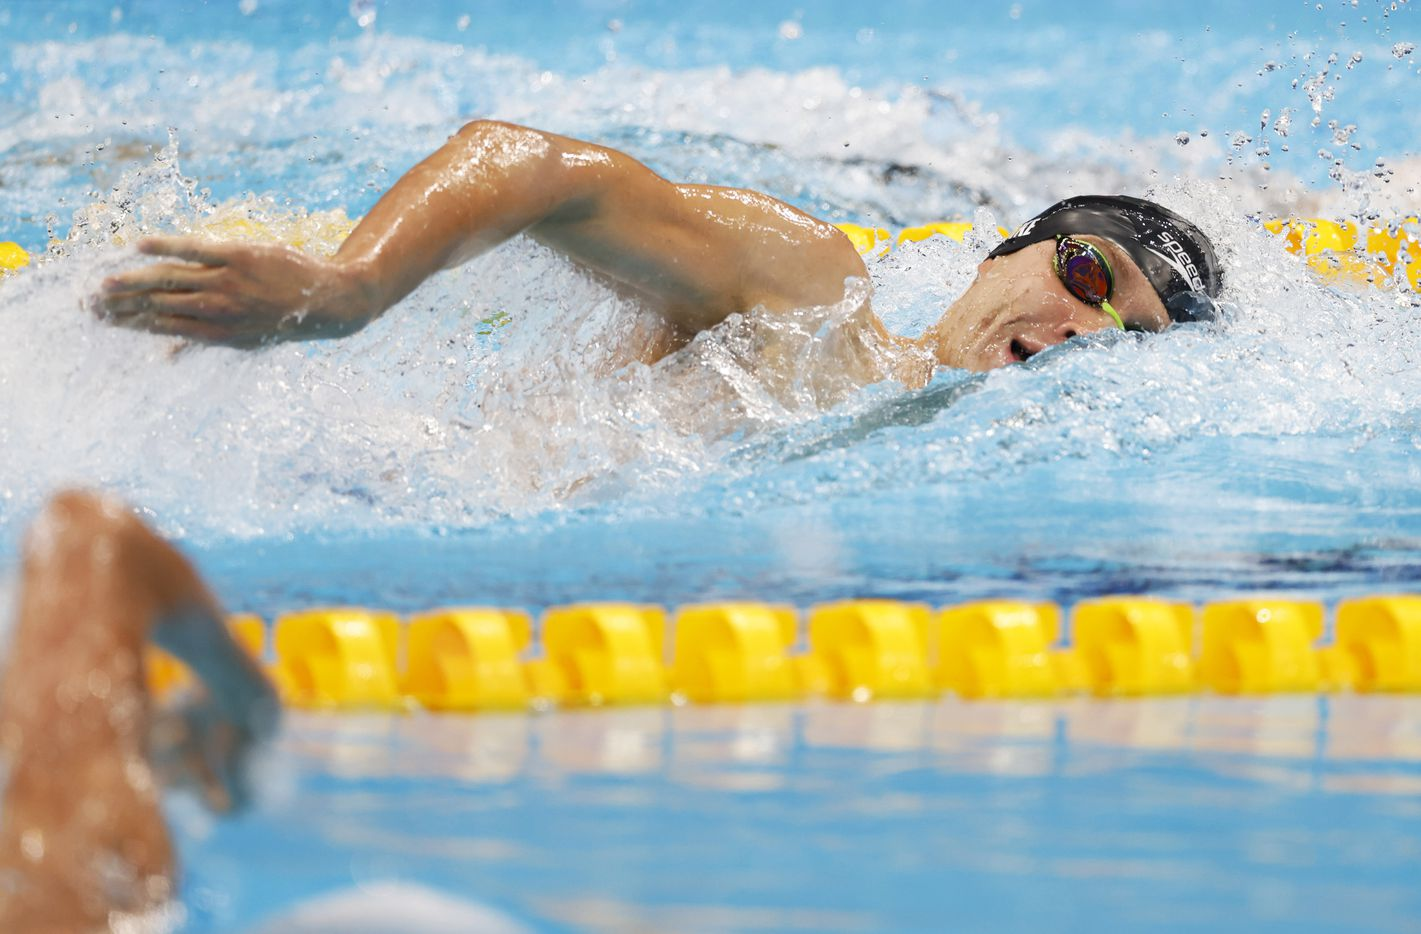 USA's Robert Finke competes in the men's 1500 meter freestyle final during the postponed 2020 Tokyo Olympics at Tokyo Aquatics Centre, on Sunday, August 1, 2021, in Tokyo, Japan. Finke won with a time of 14:39.65 to earn a gold medal. (Vernon Bryant/The Dallas Morning News)